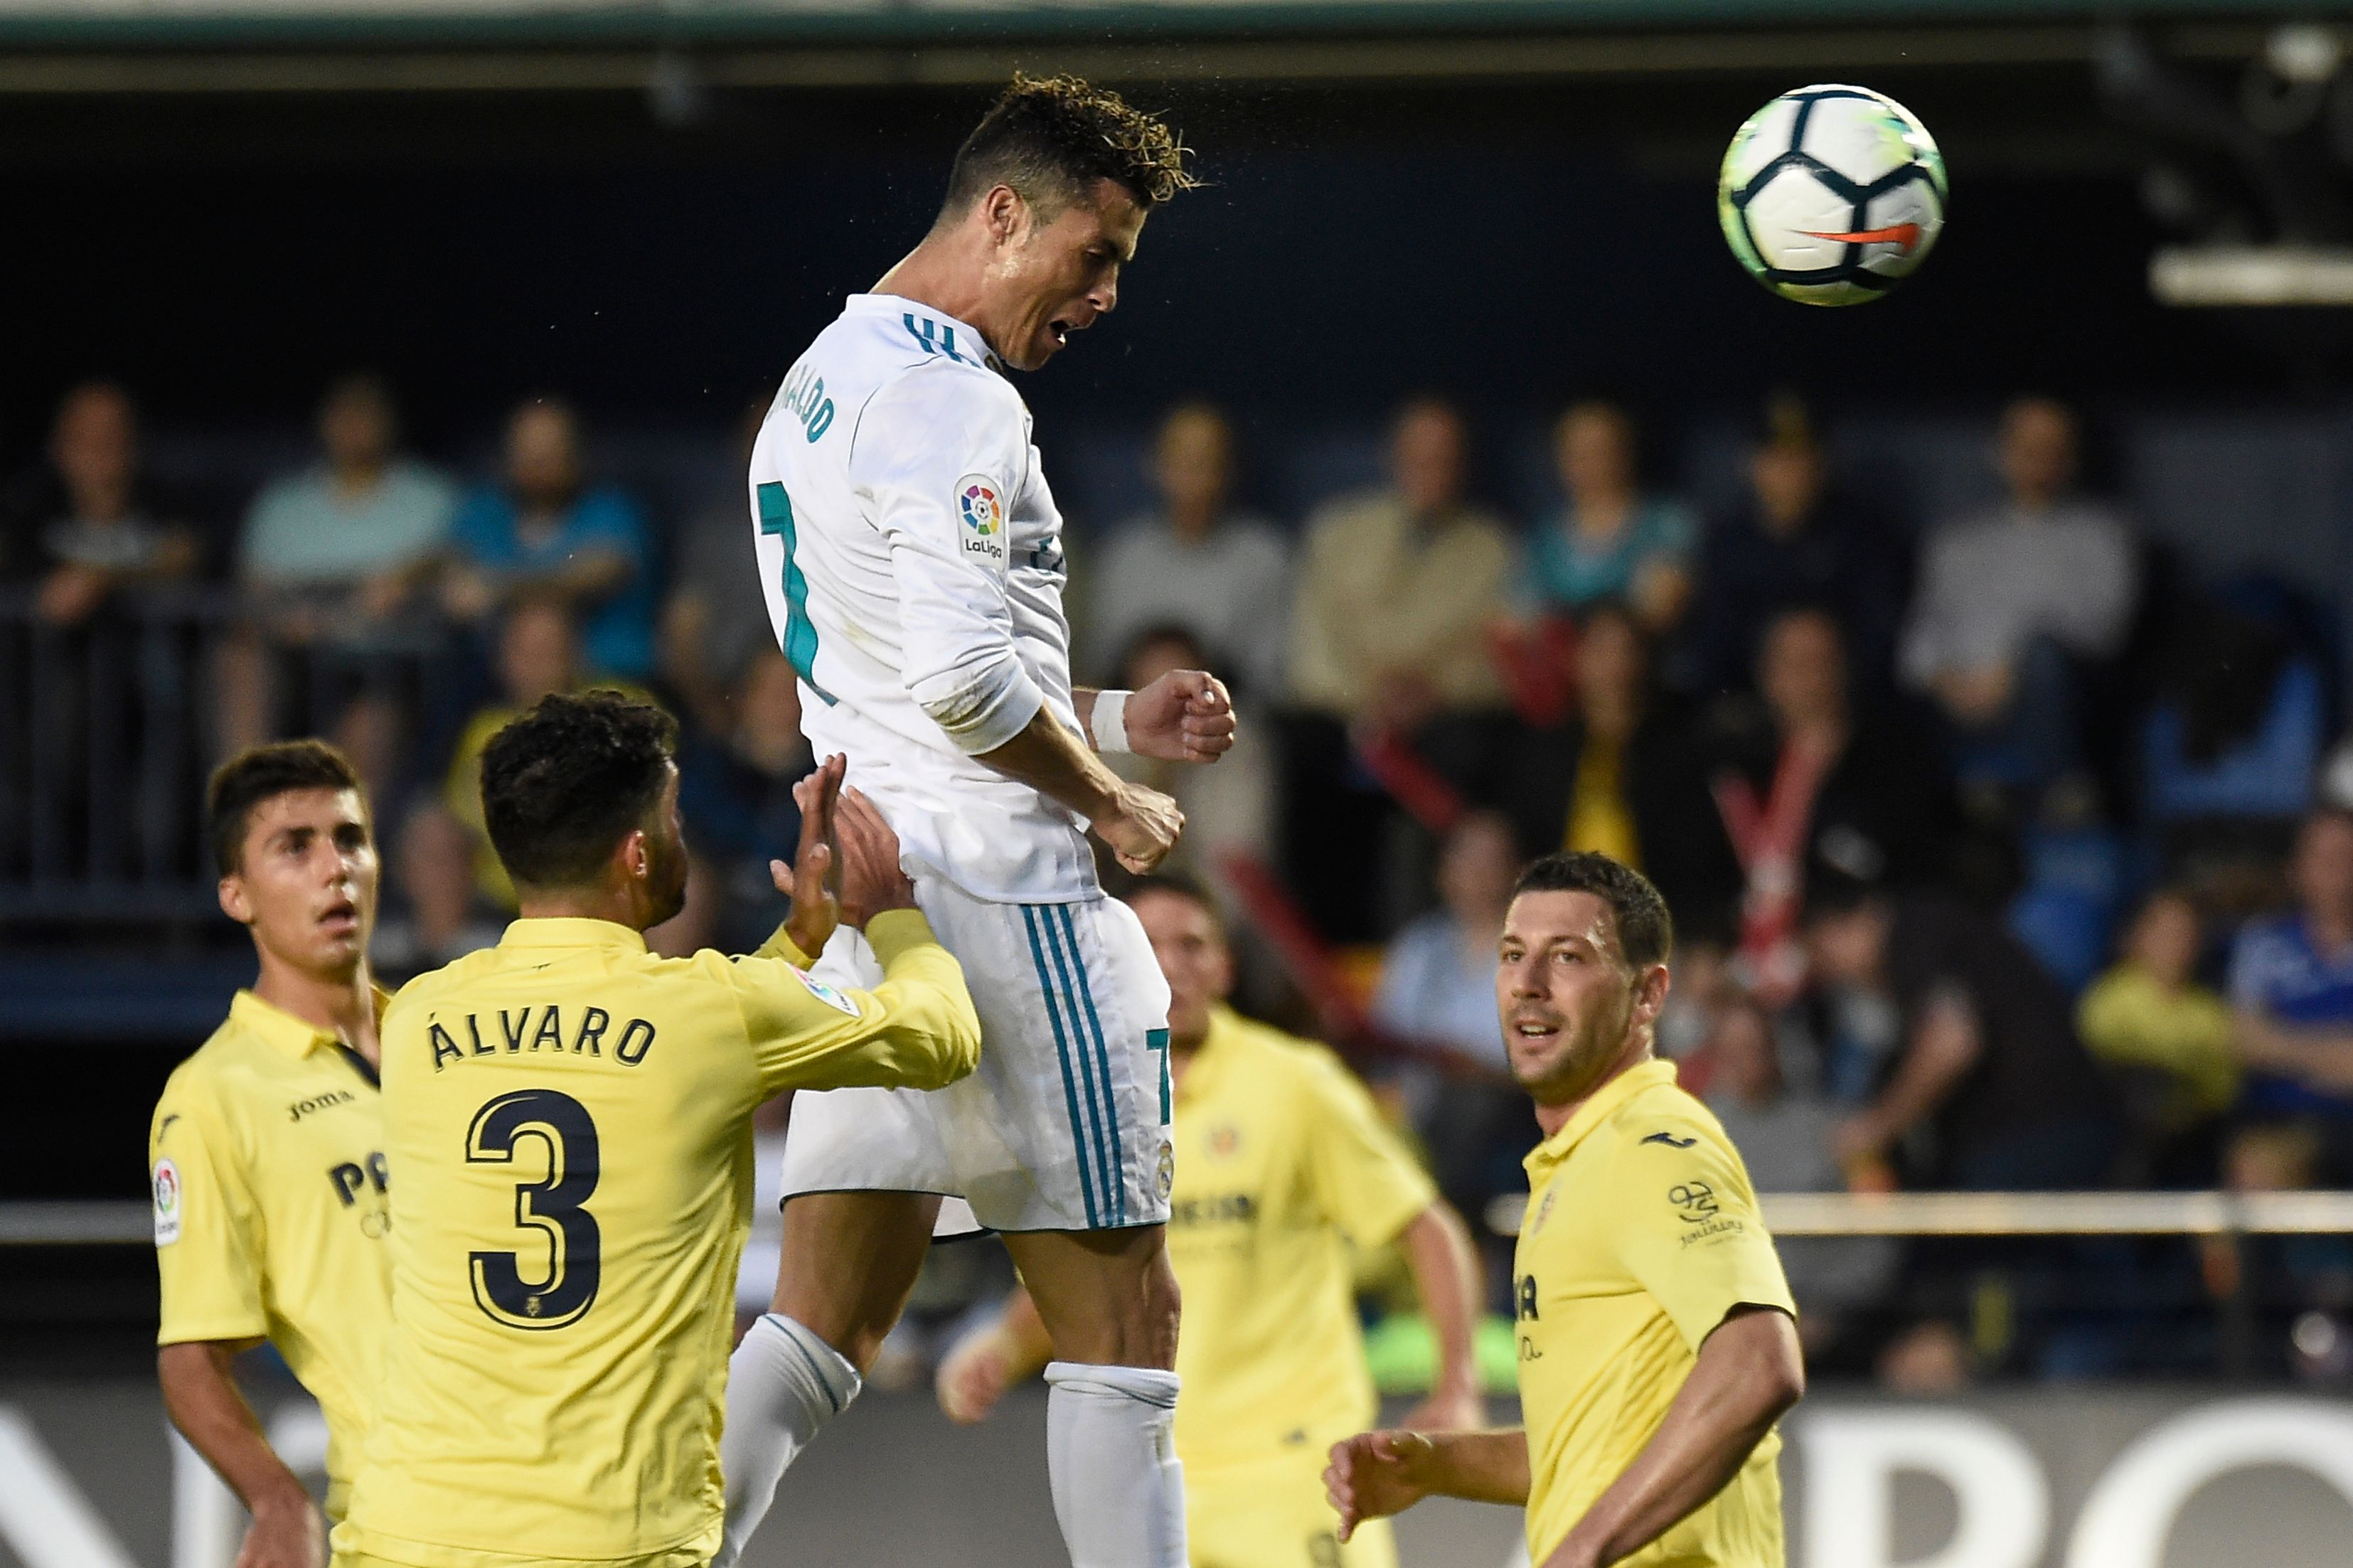 Laporan Pertandingan: Villarreal 2-2 Real Madrid